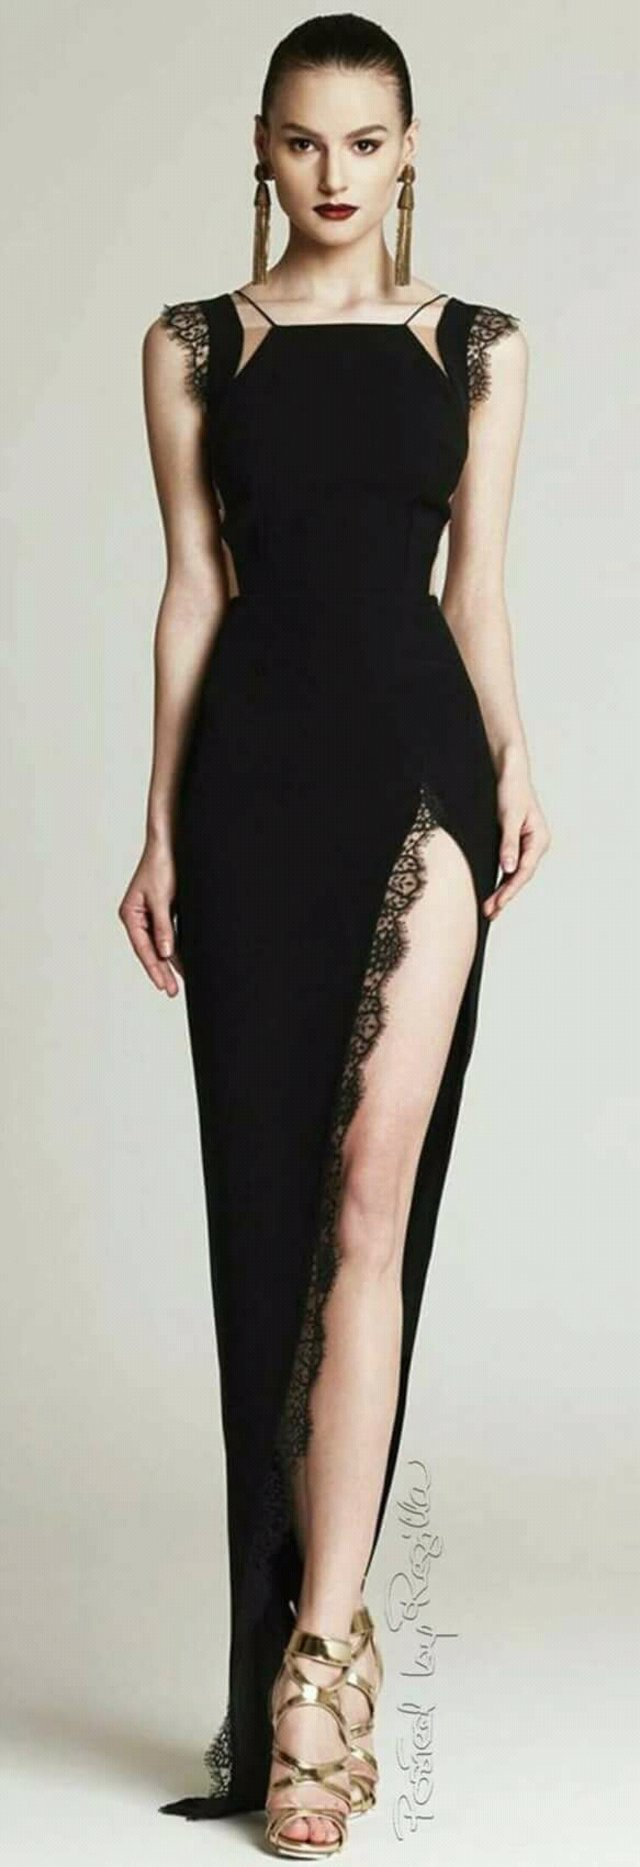 #Gown #blackdress